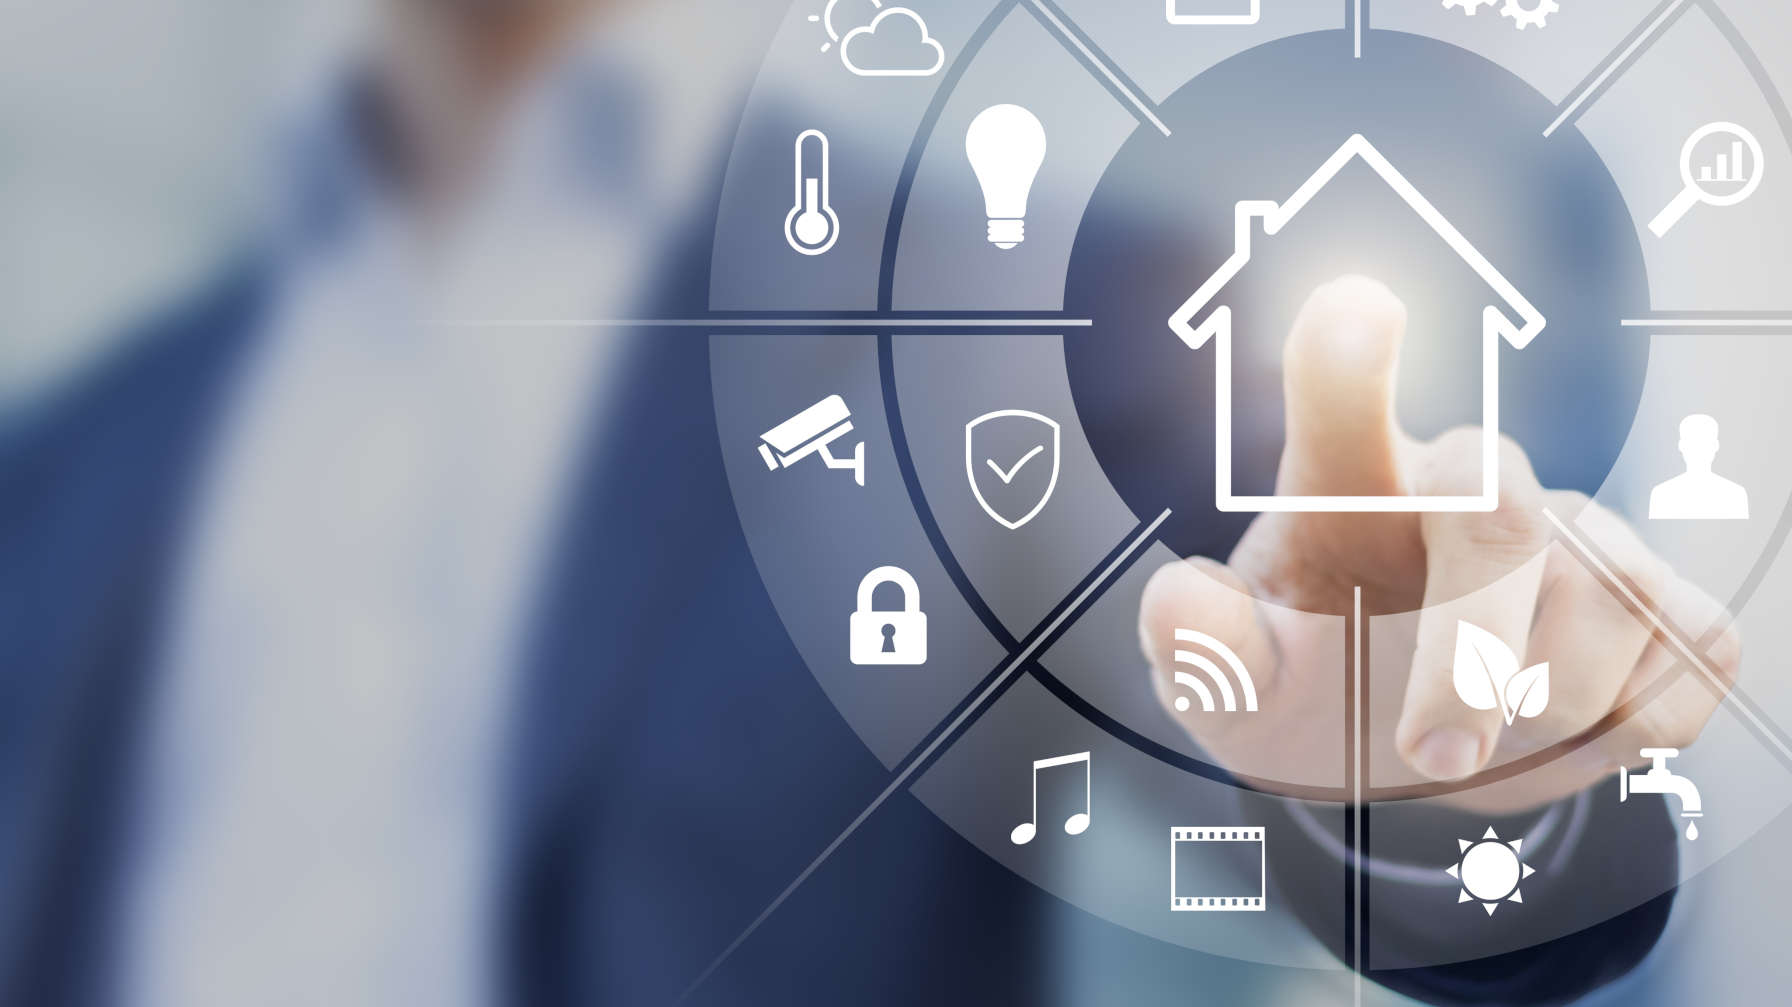 Home automation: new buildings' dominant trend